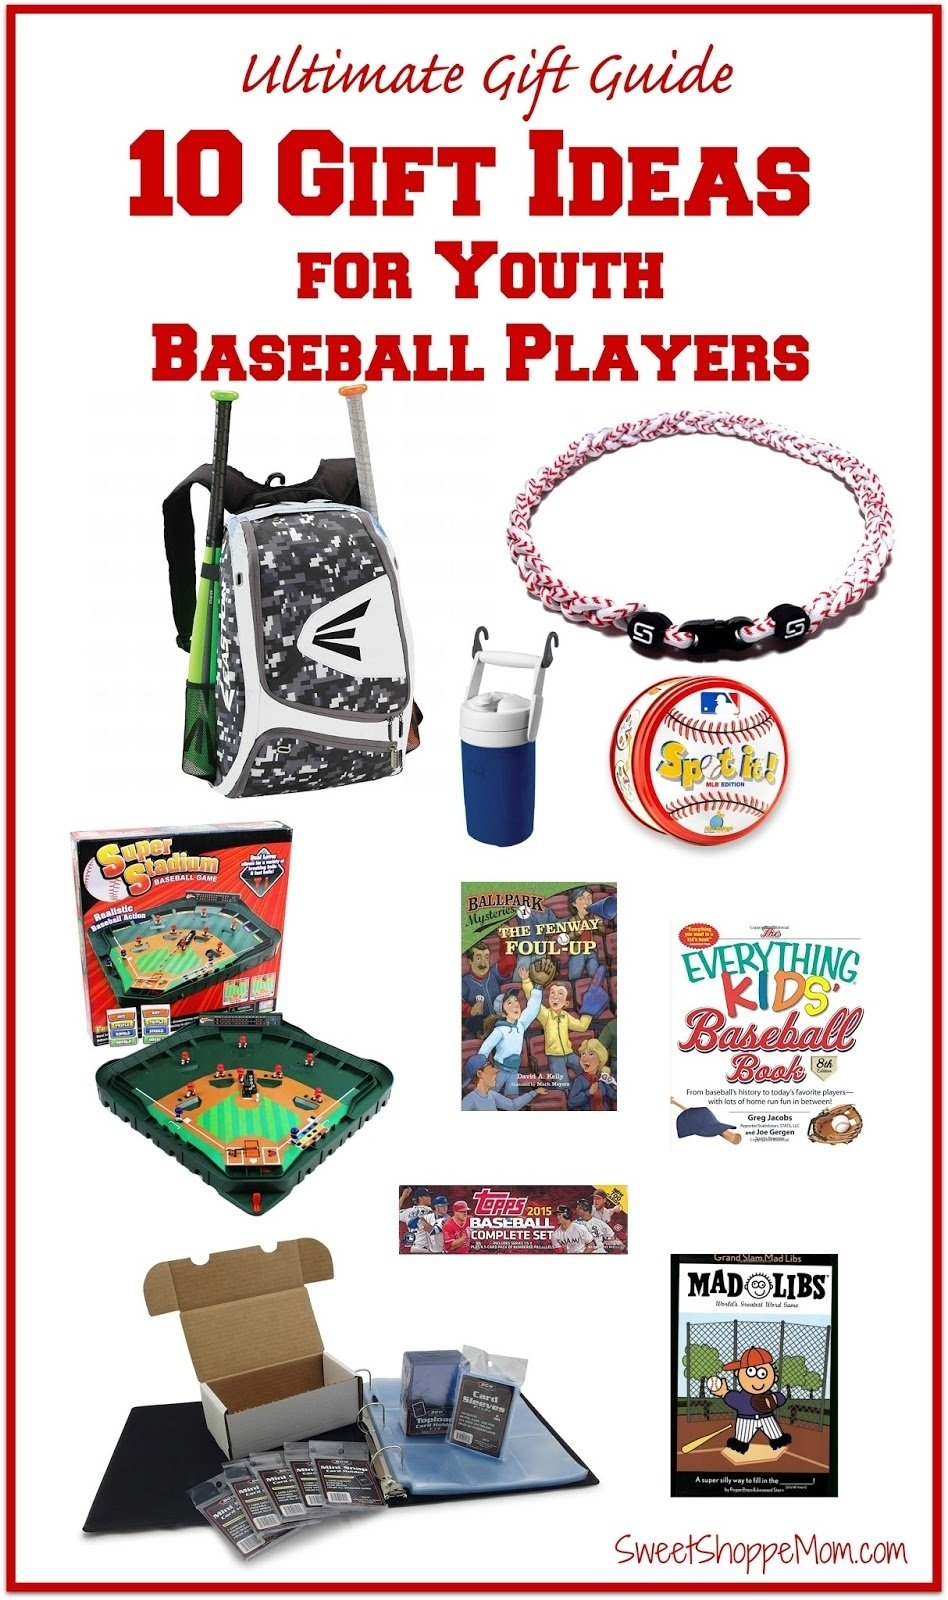 10 Stunning Gift Ideas For Baseball Players the ultimate gift guide 10 gift ideas for youth baseball players 2020